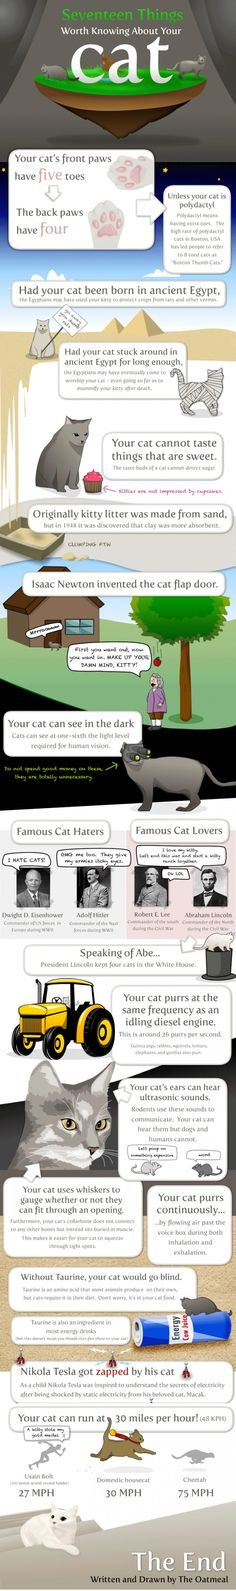 This is a love letter to Matthew Inman who is the brains behind The Oatmeal His current smash bestselling book How To Tell If Your Cat Is Plotting to You is brilliant but his infographics turn me into mush. It like he's gone inside my brain and able to put what I know about cats onto paper better …